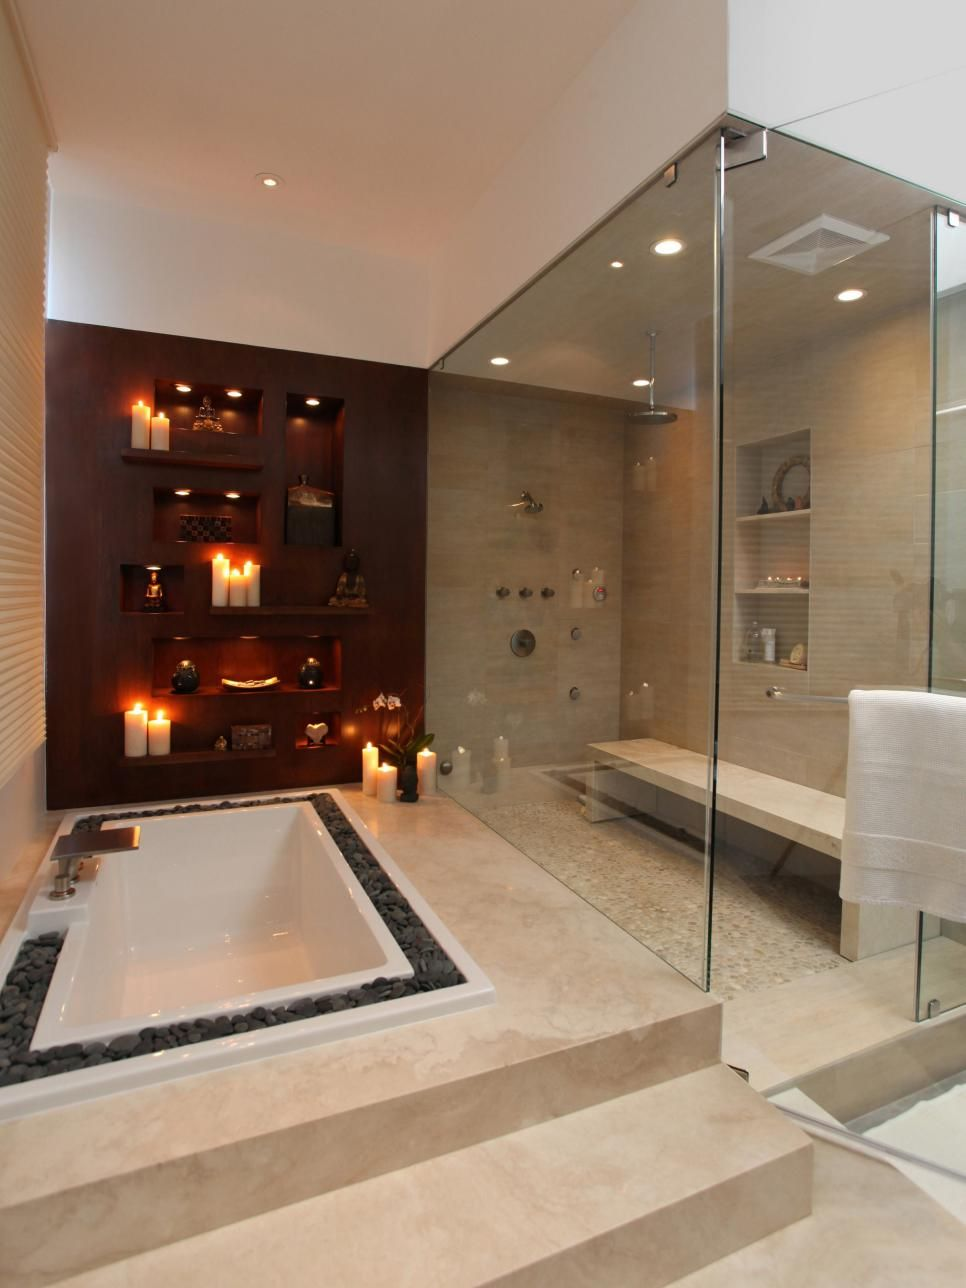 designed long bathrooms. A wall of candles  a double occupancy shower complete with long bench and Sexy Master Bathrooms to Put You in the Mood Tubs Bench